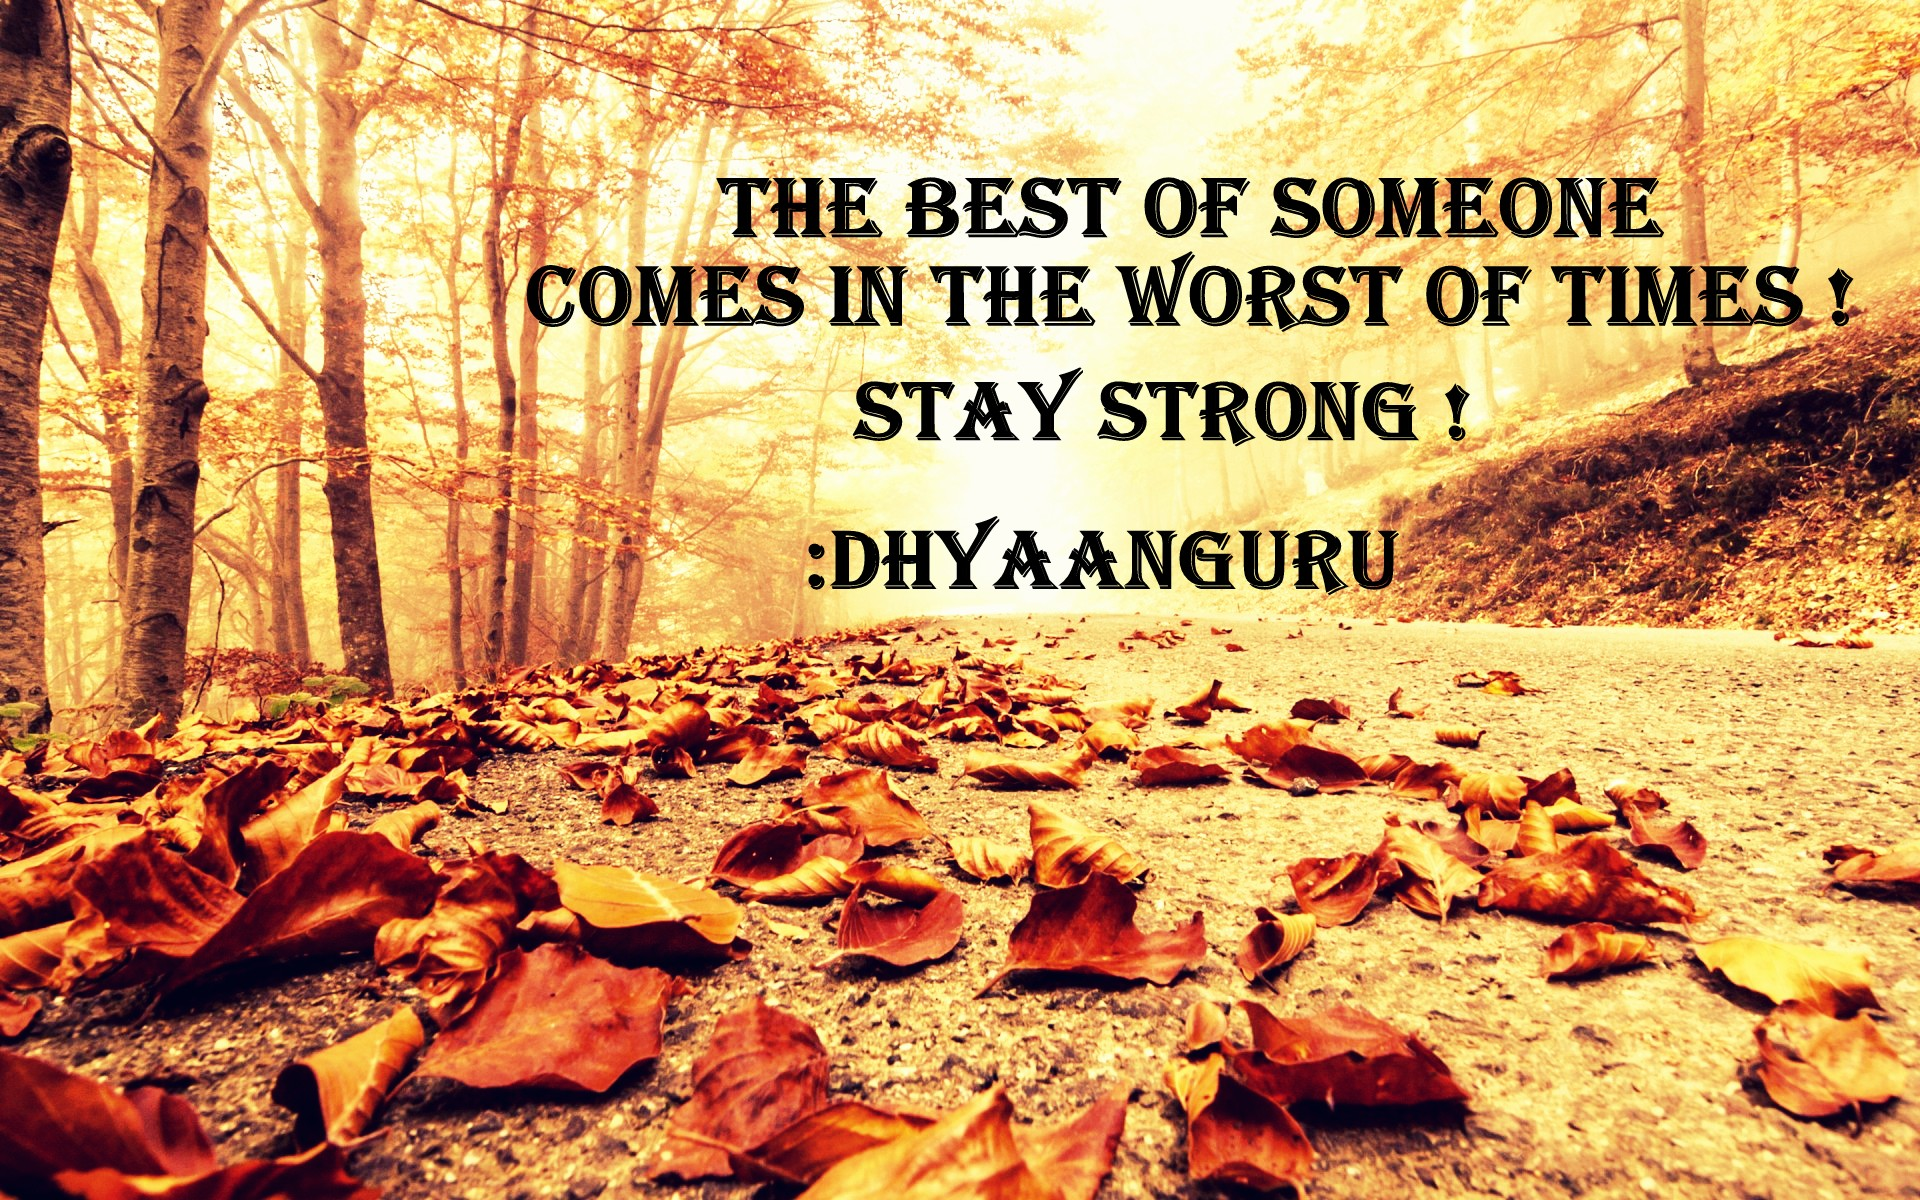 Best Is About To Come If Times Are Hard Dhyaanguru